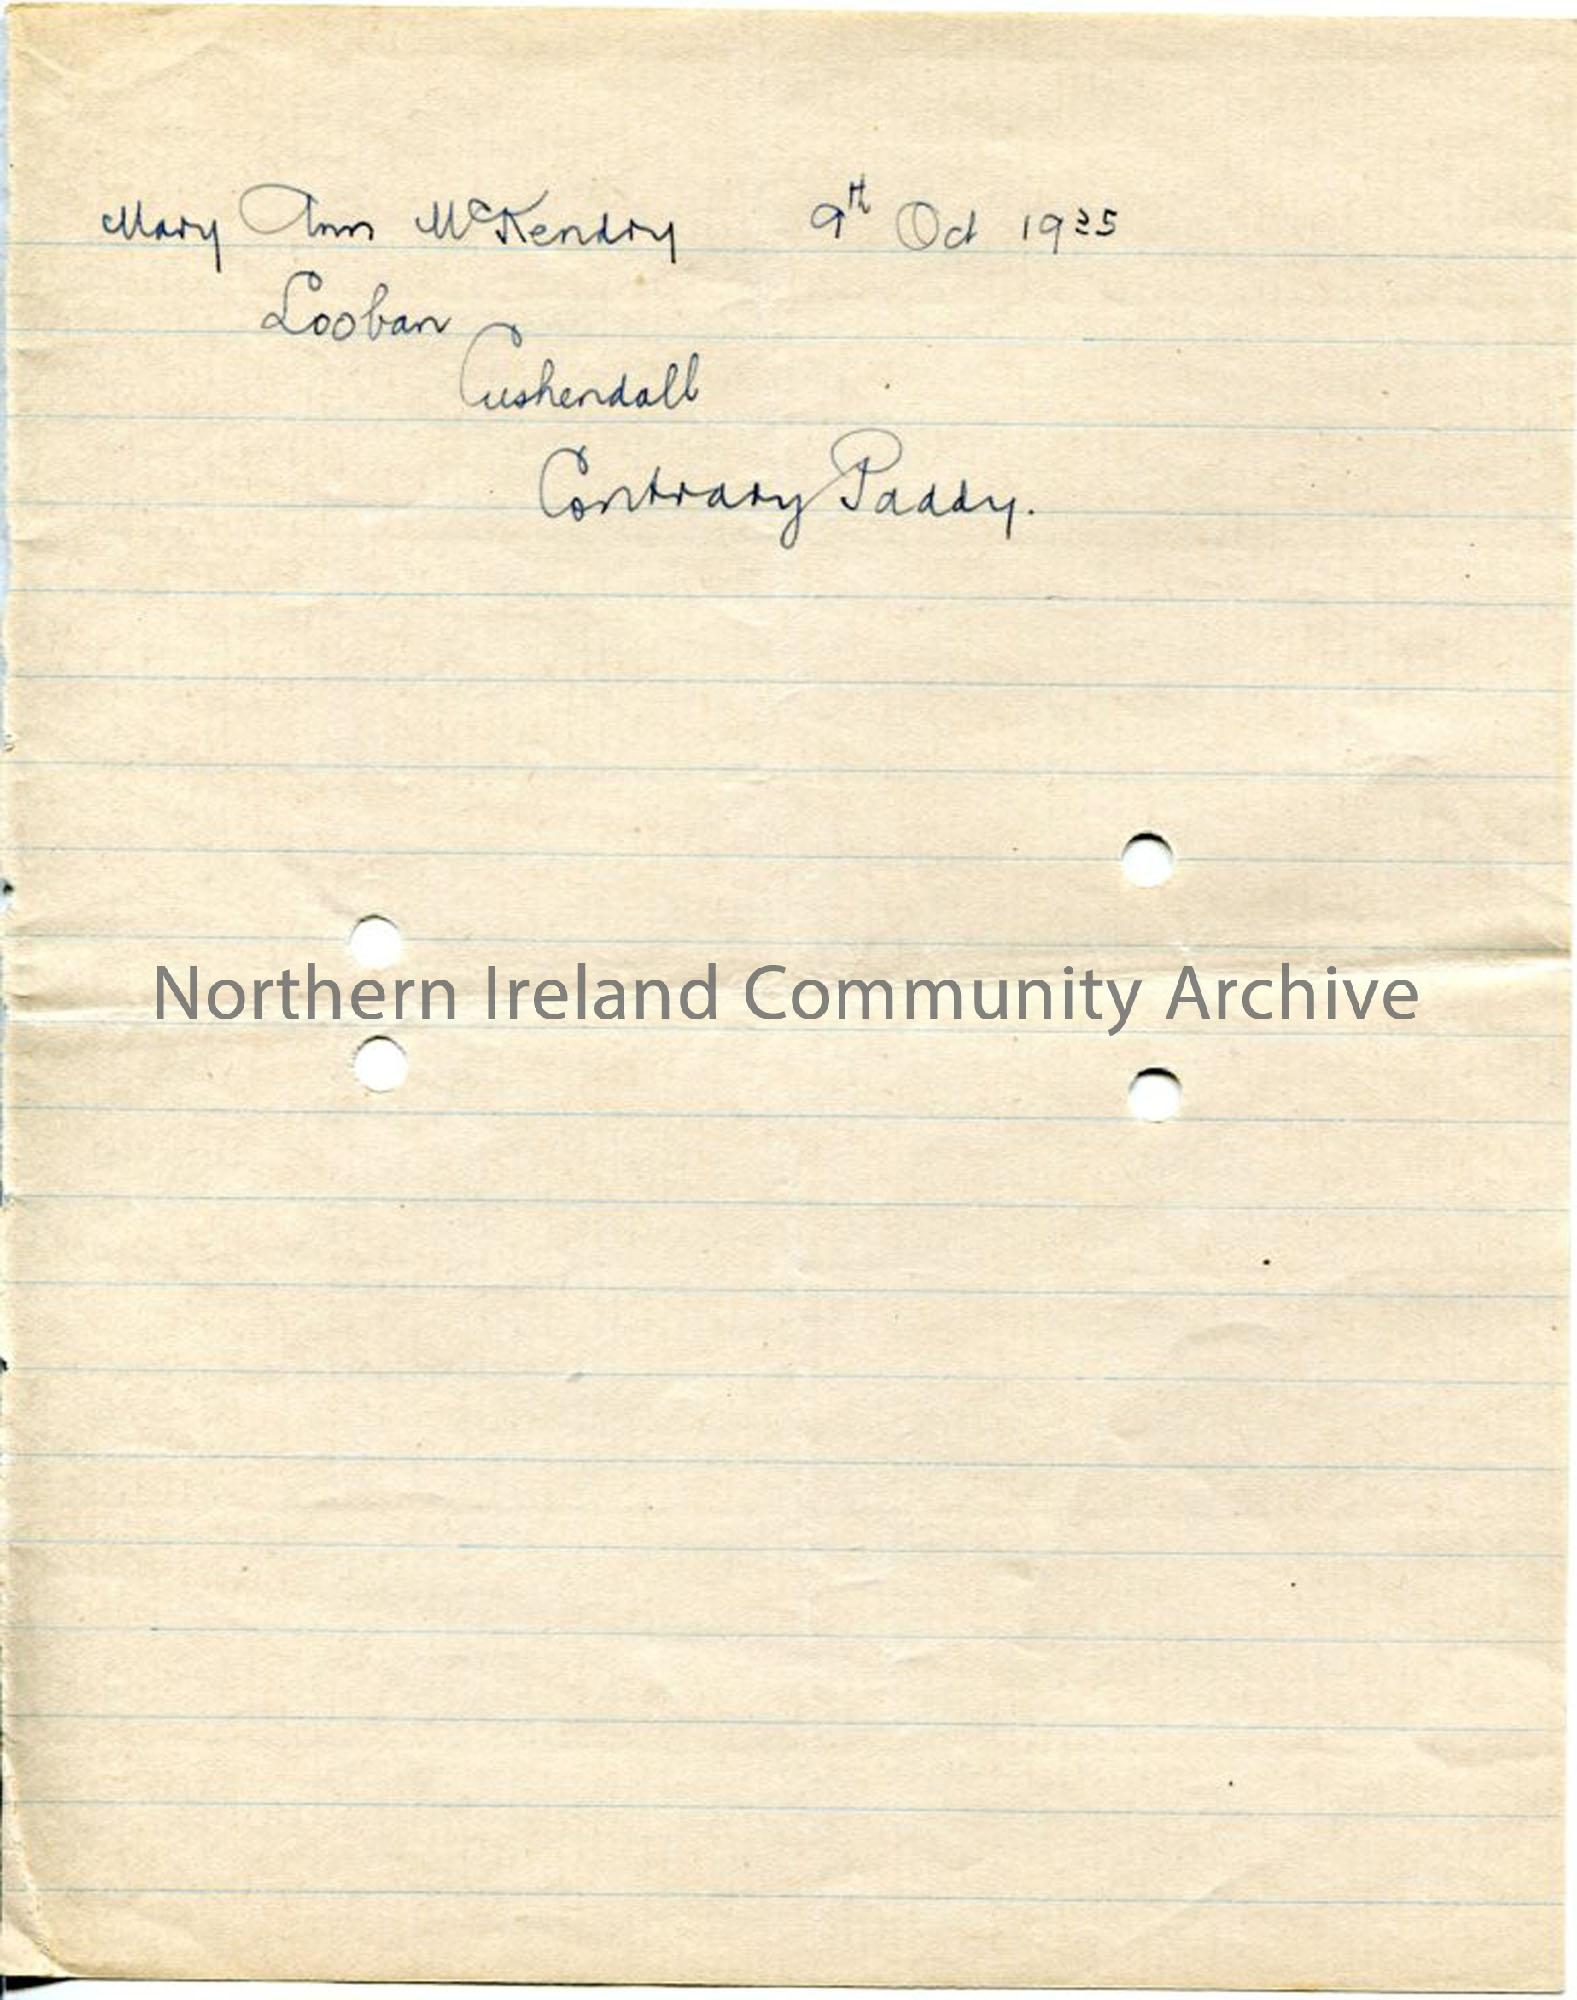 Handwritten document 'Contrary Paddy'